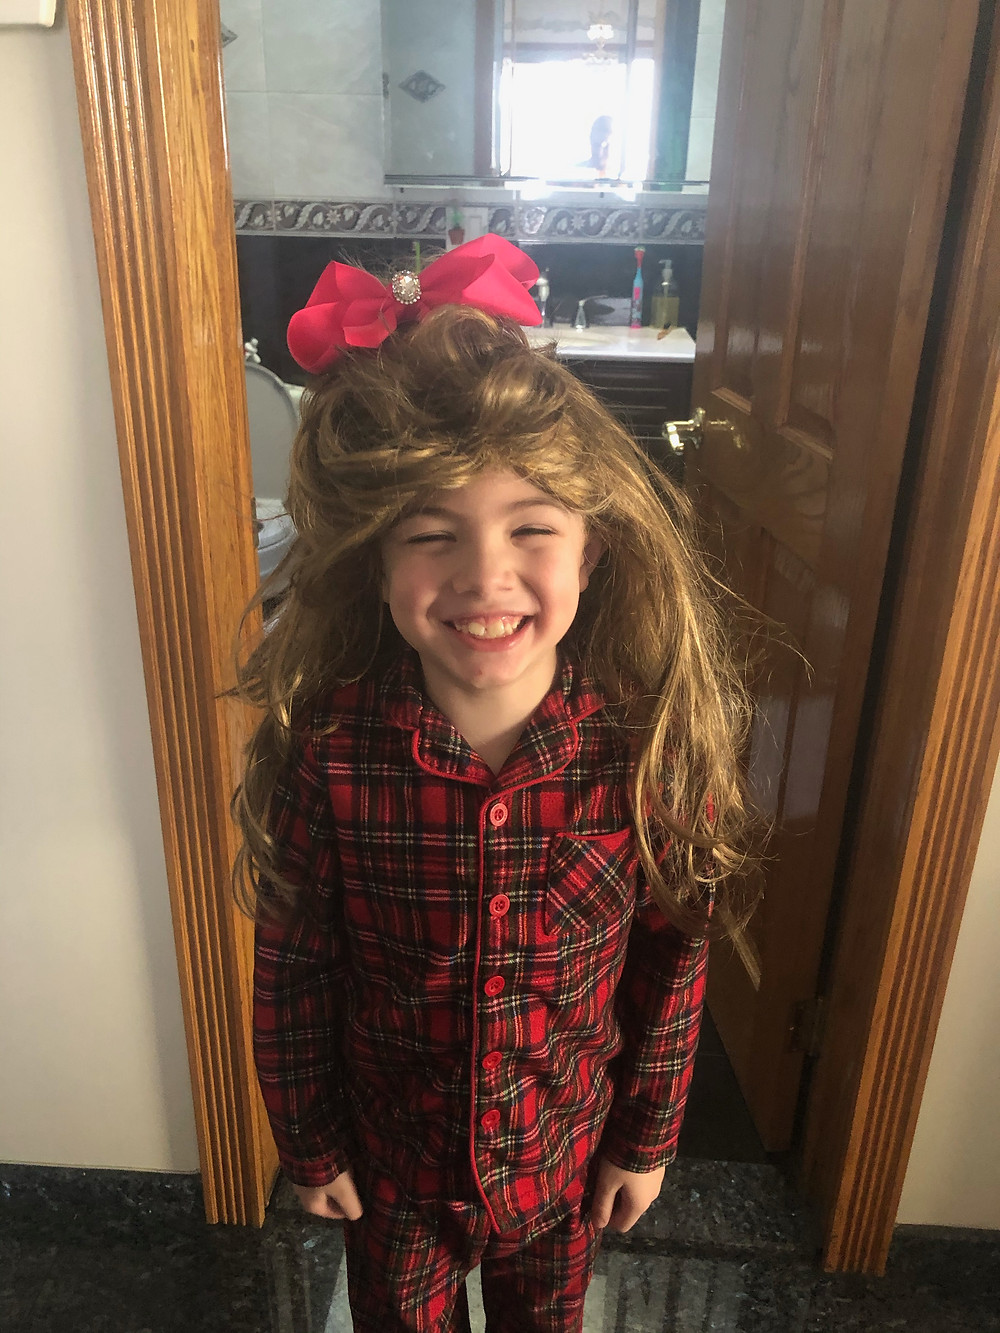 1st grader celebrates Wacky Hair Day in a long wig.